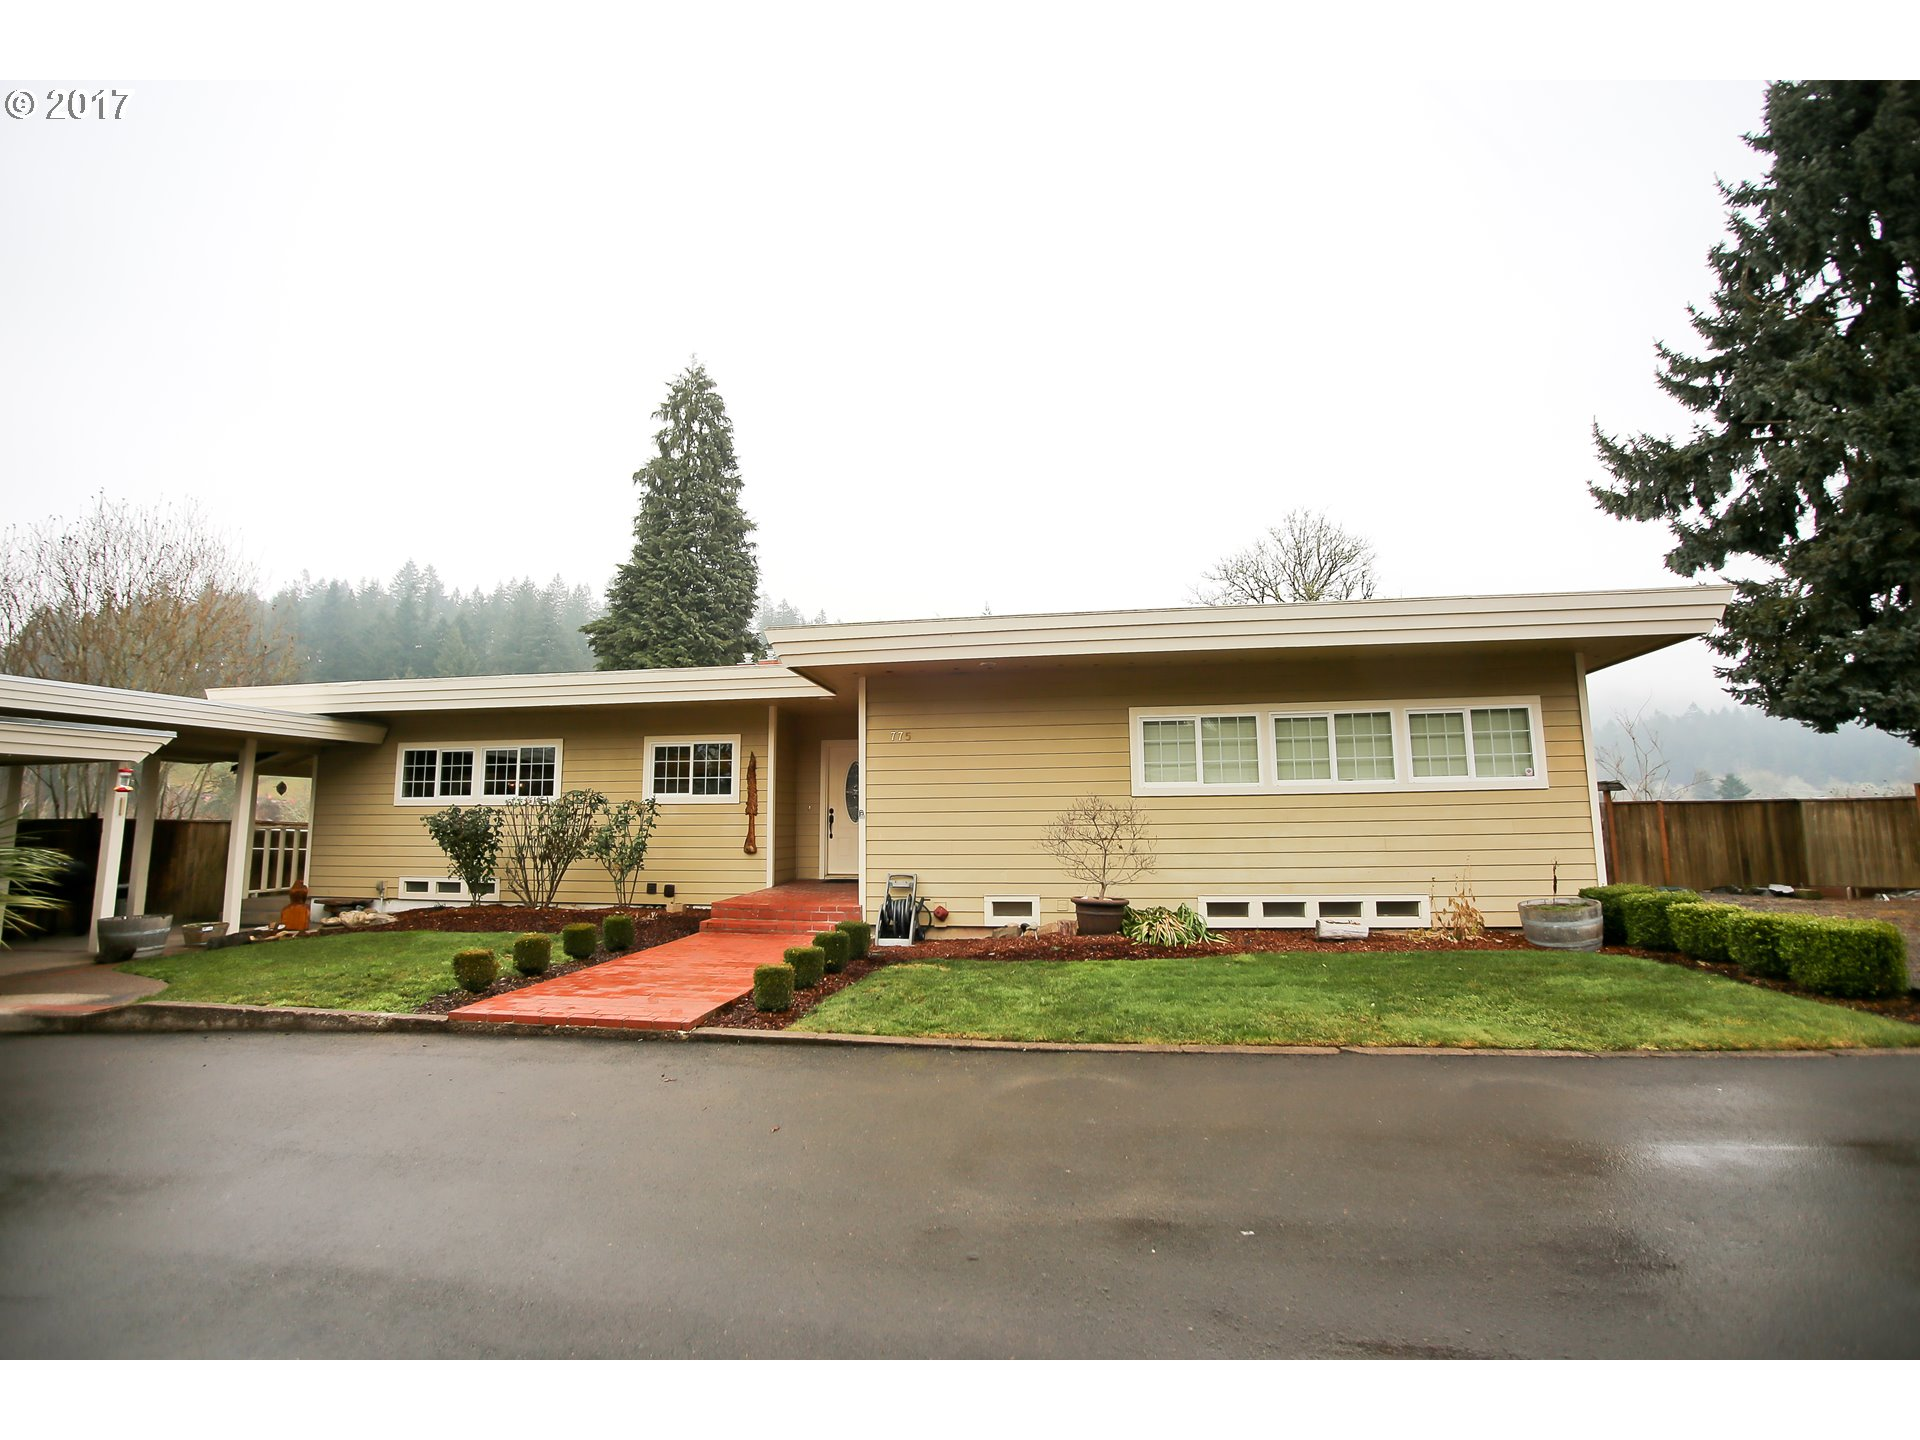 775 S 57TH ST, Springfield, OR 97478